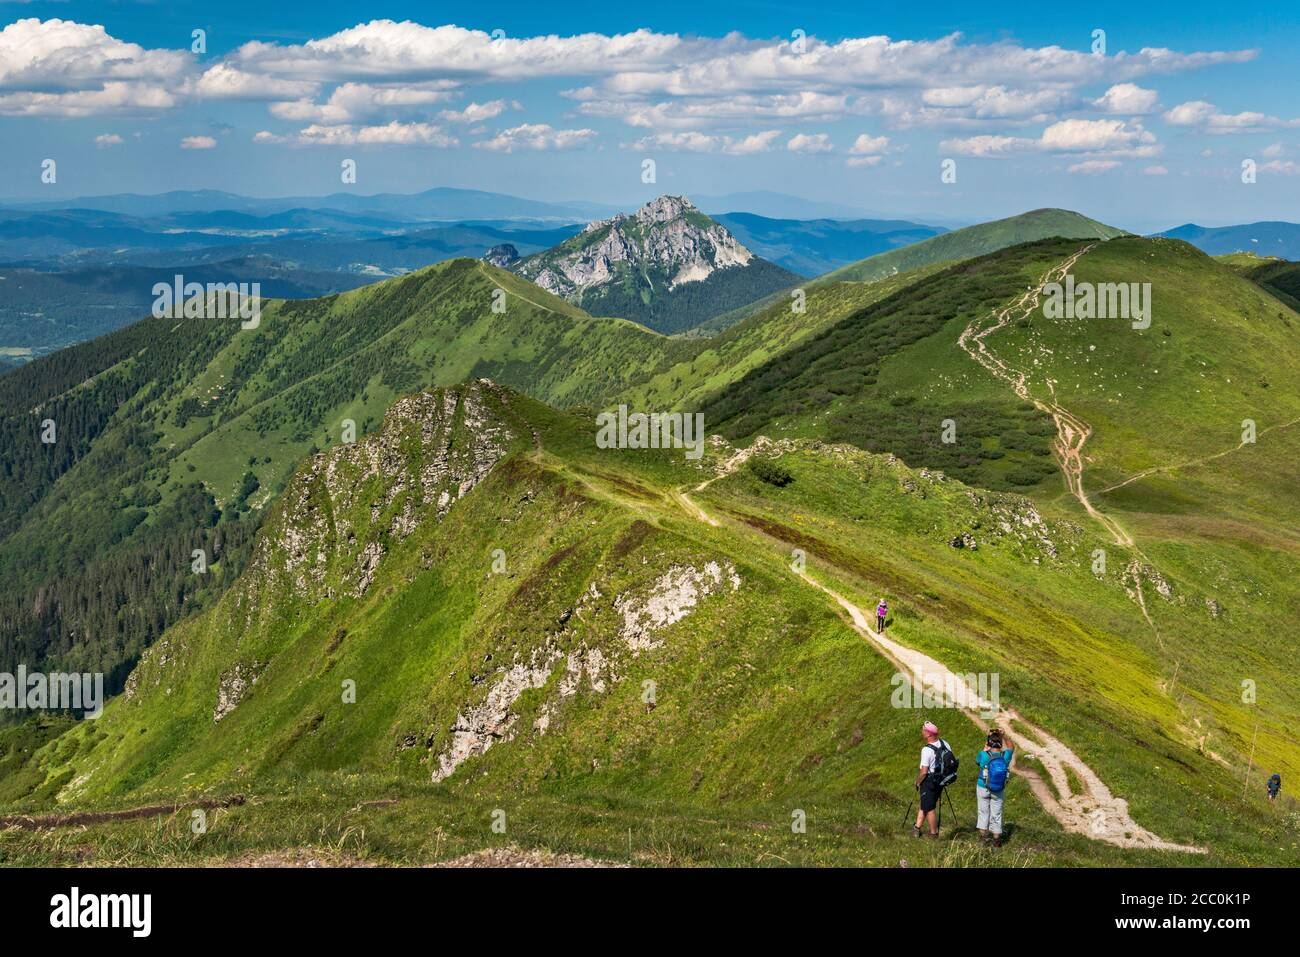 Velky Rozsutec mountain in far distance, Stoh massif on right, hikers, view NE from summit of Chleb, Mala Fatra National Park, Zilina Region, Slovakia Stock Photo